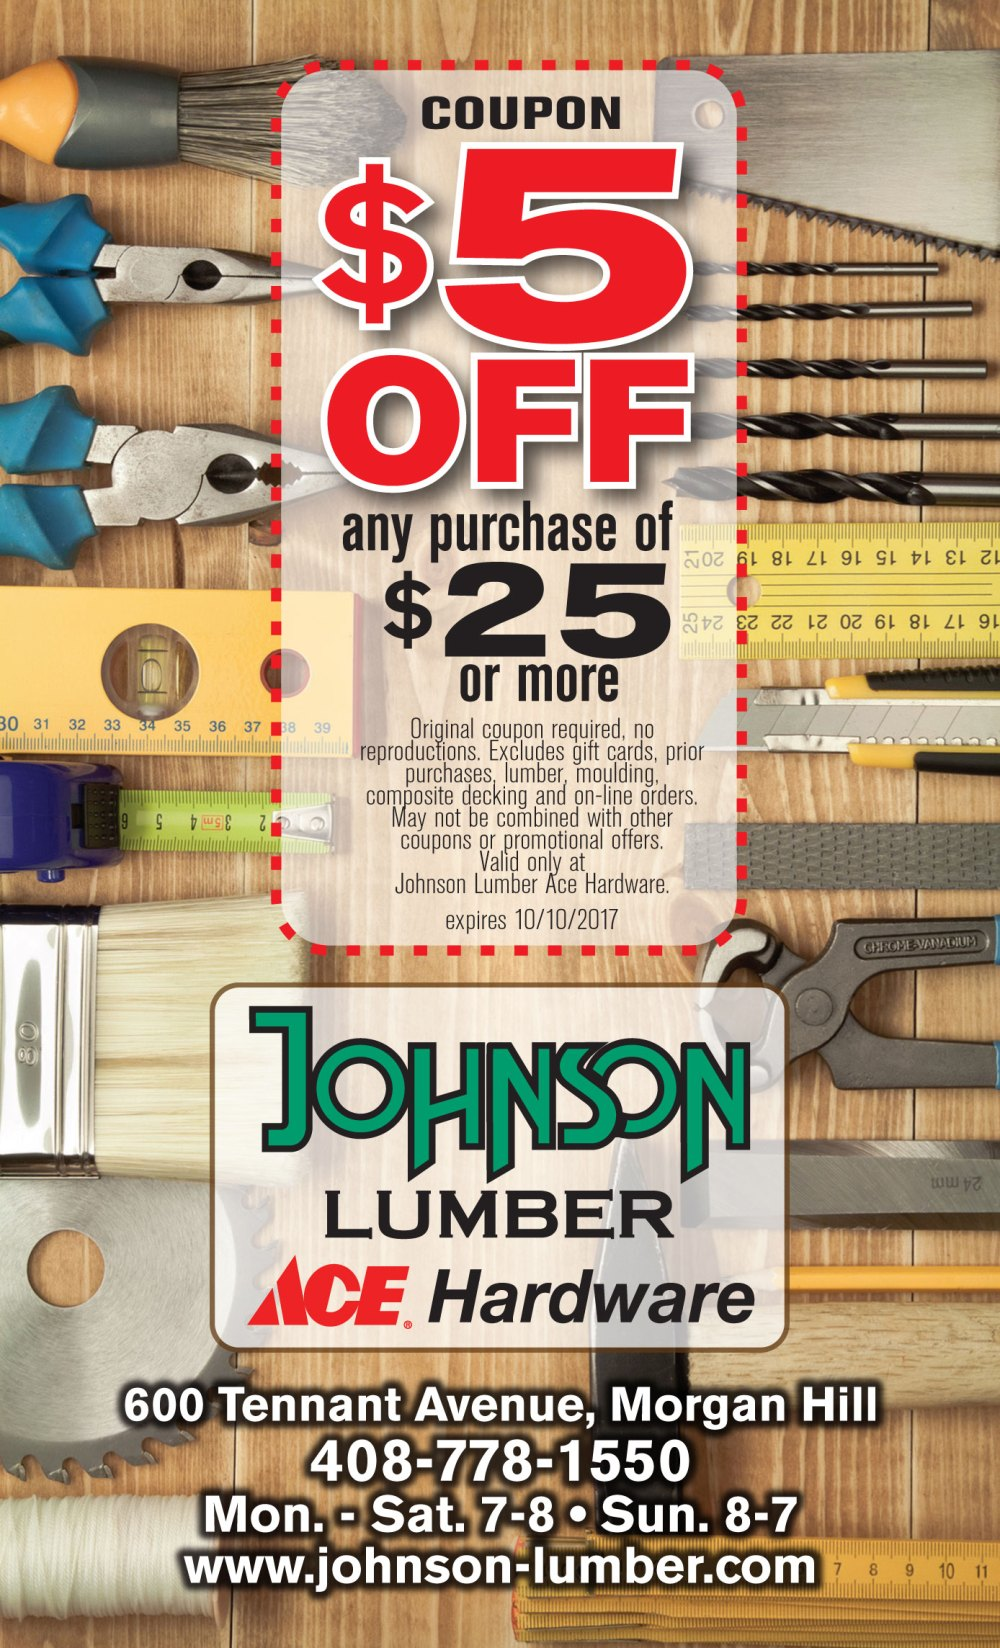 medium resolution of johnson lumber ace hardware 5 off 25 or more coupon